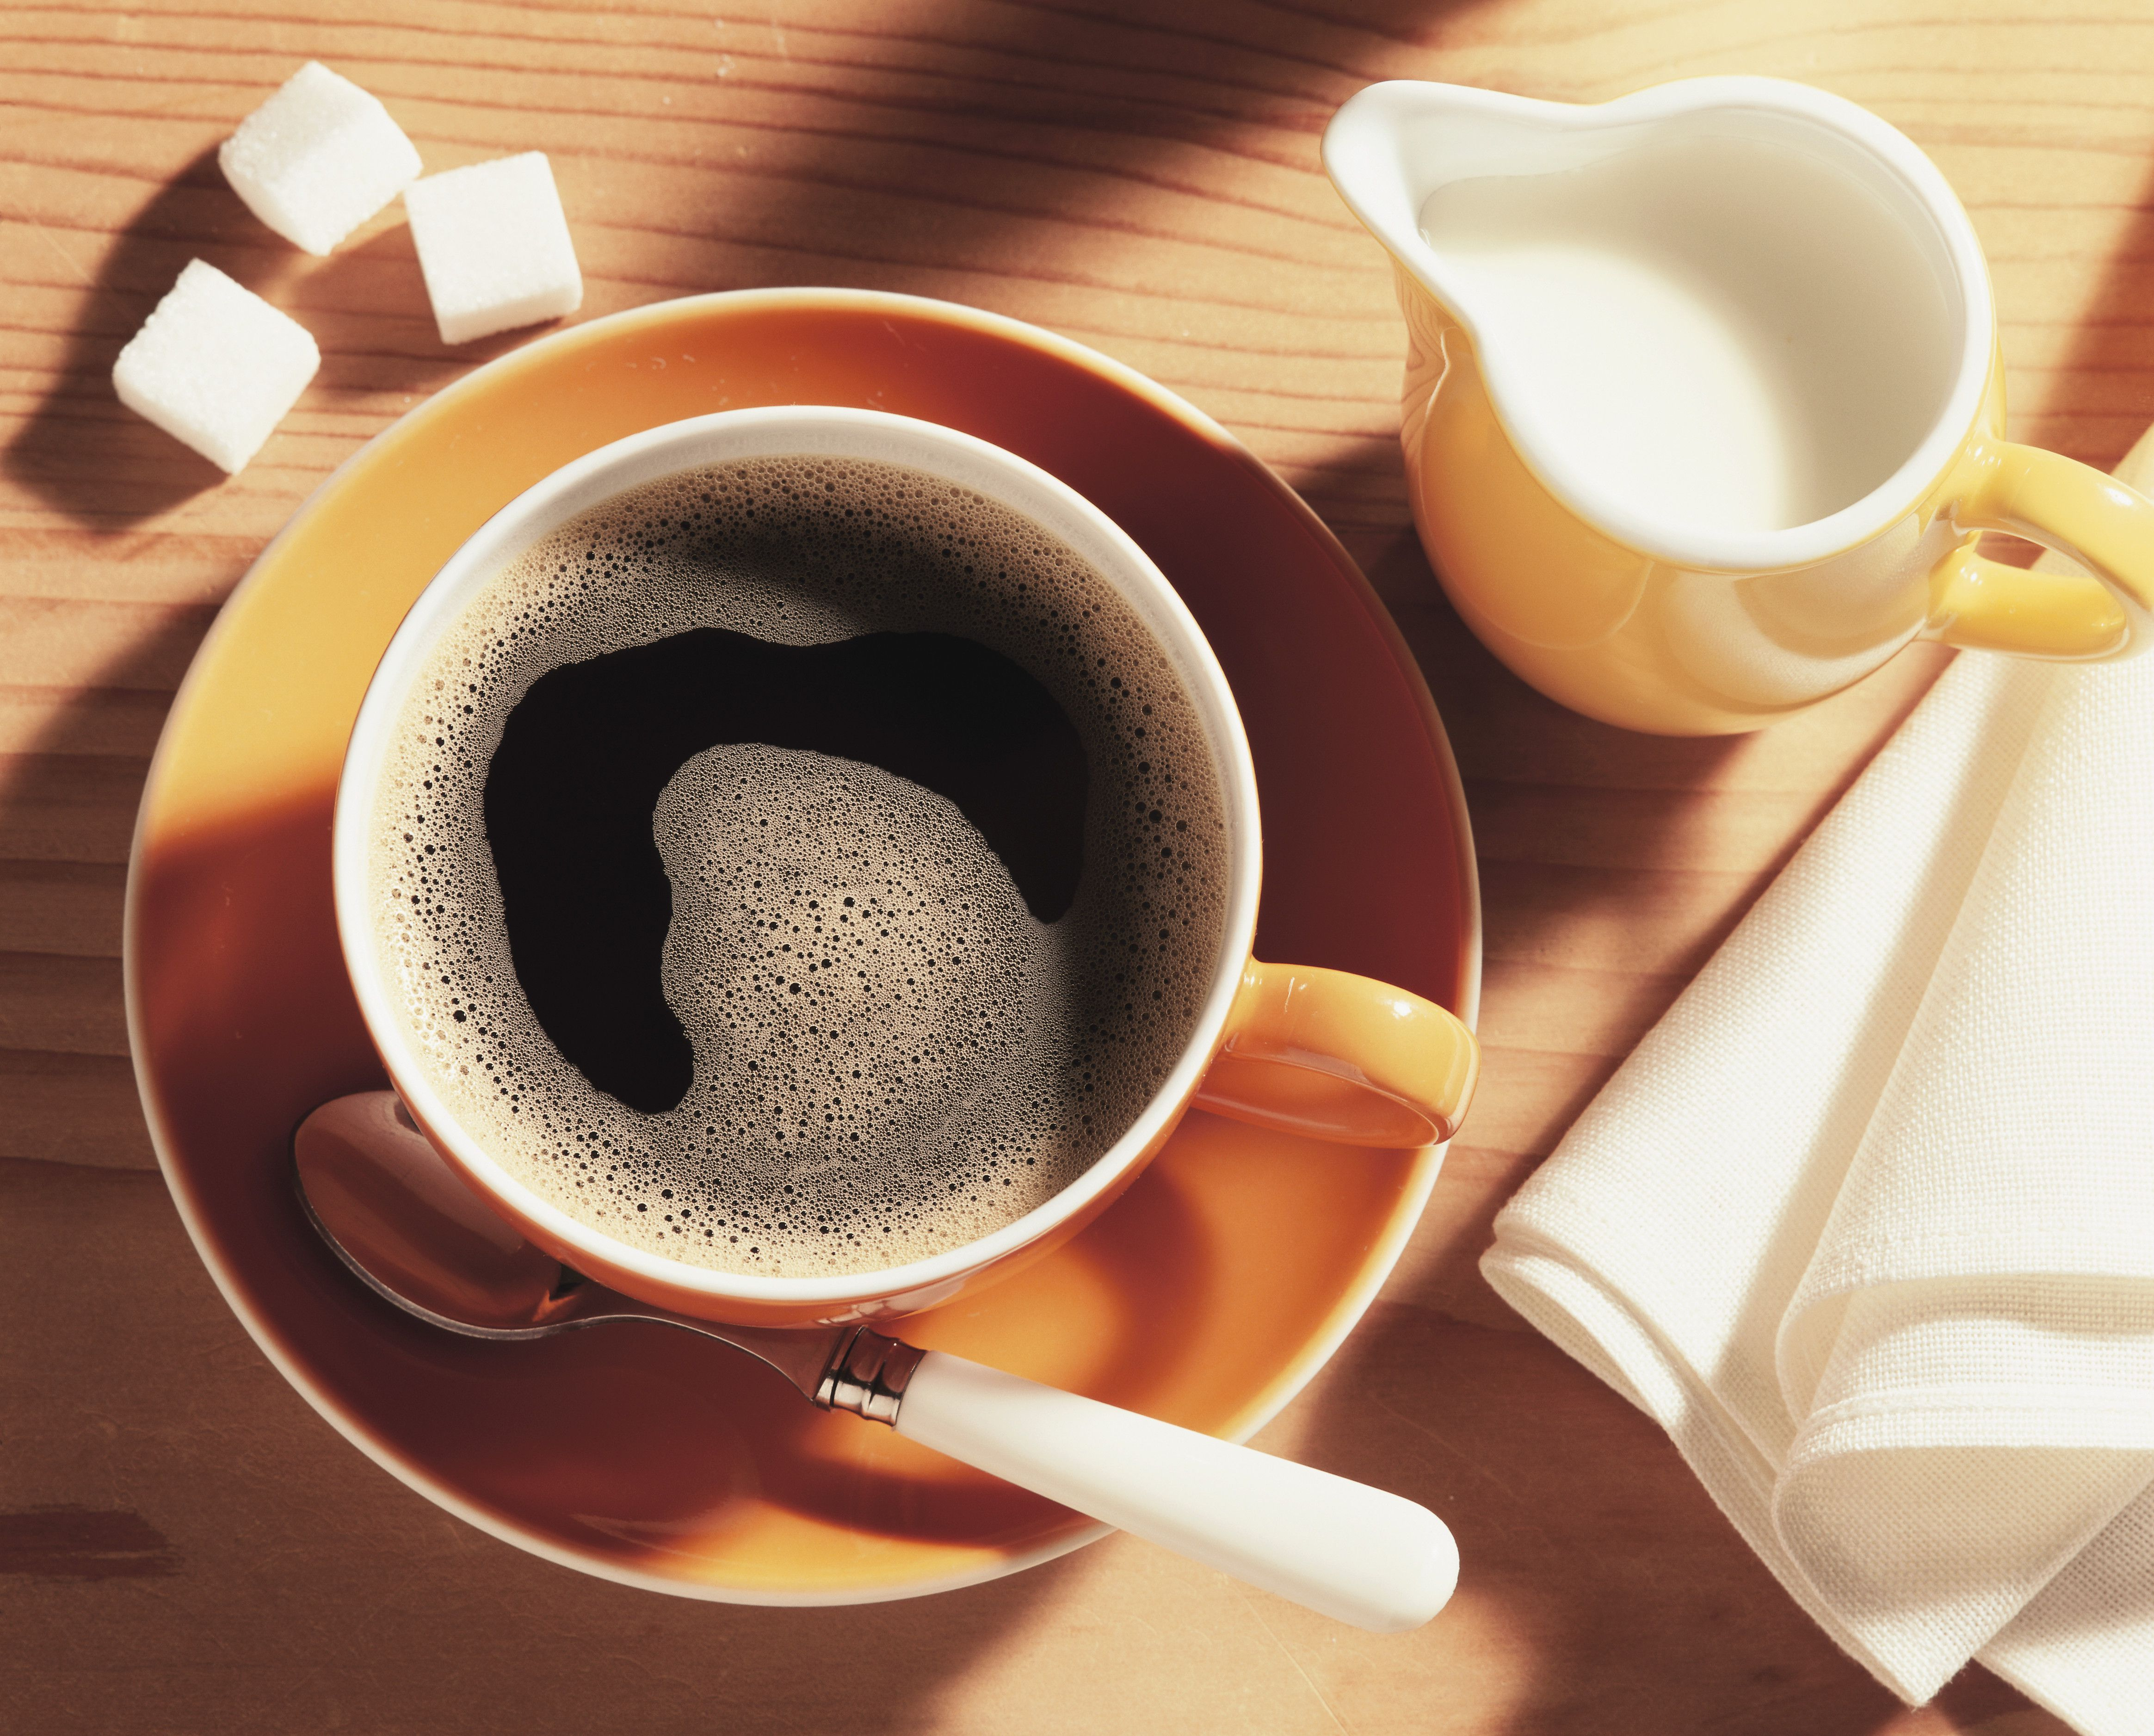 A cup of coffee and a jug of coffee cream